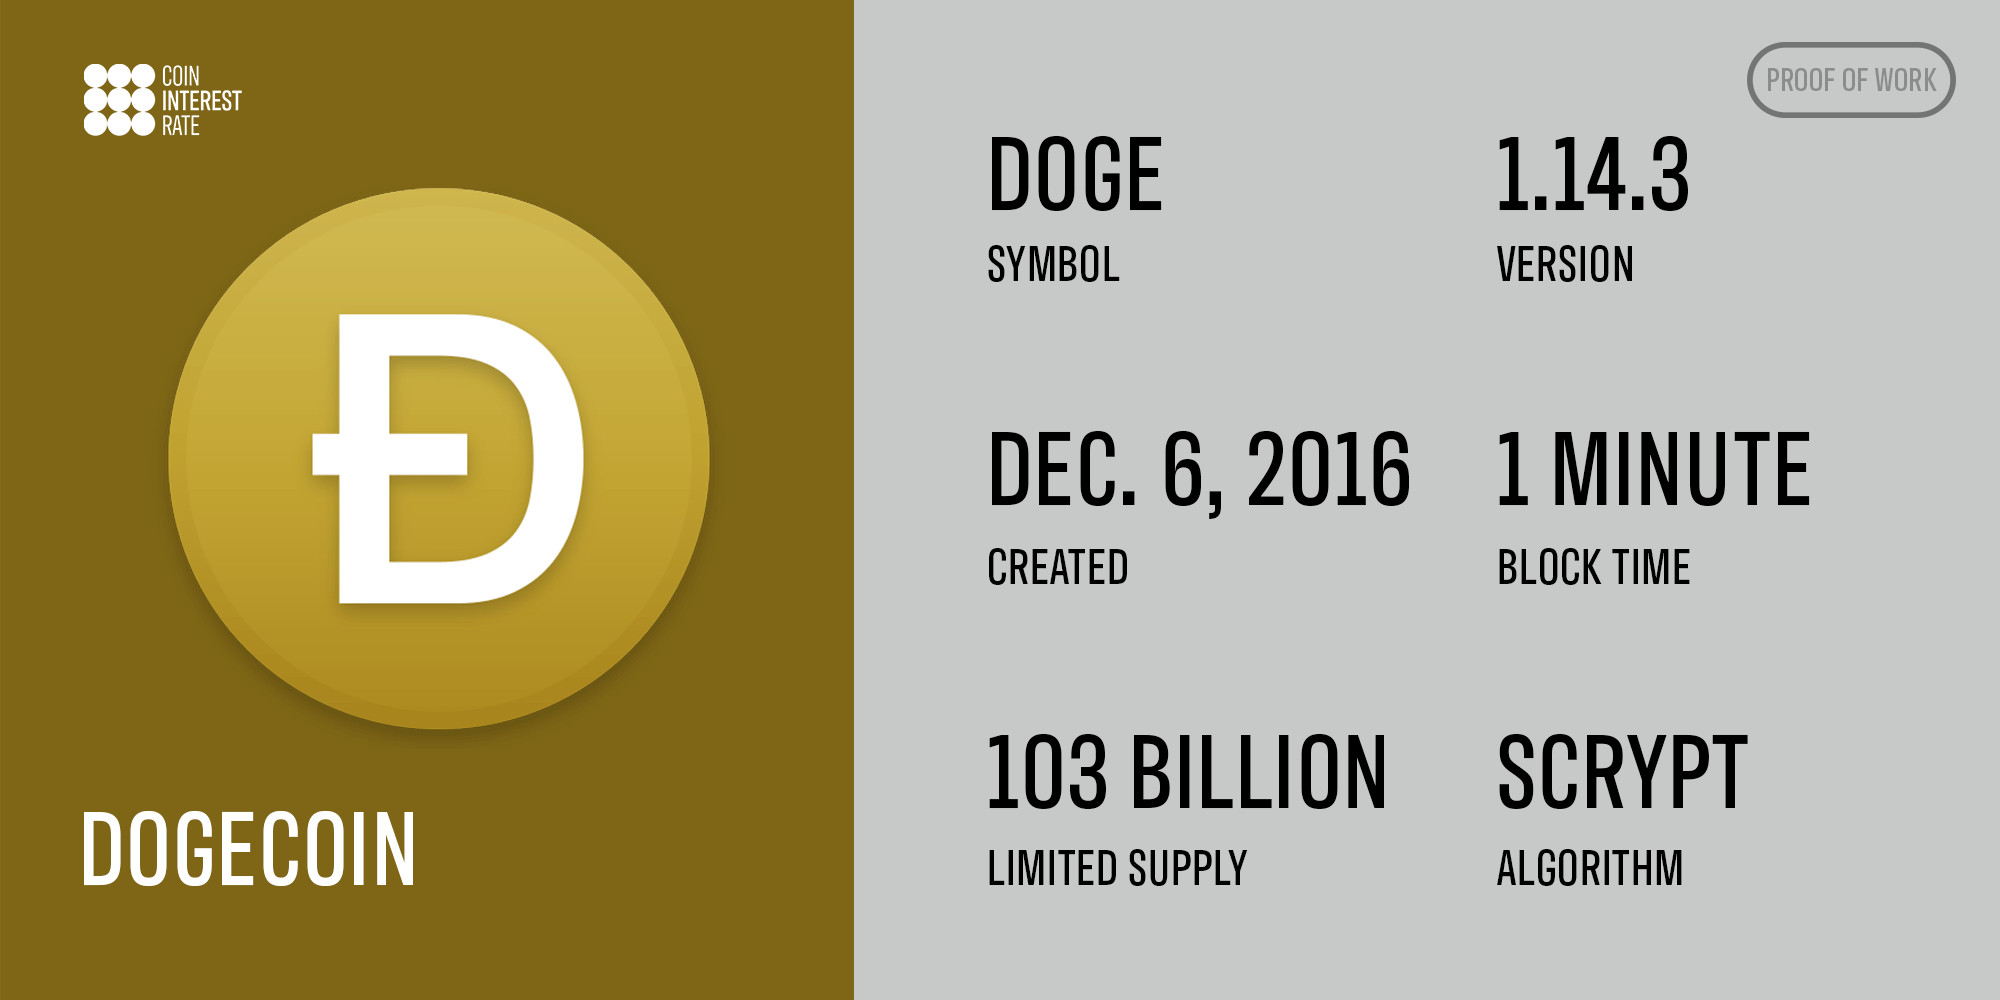 Dogecoin stats infographic (symbol, version, created, block time, supply and algorithm)